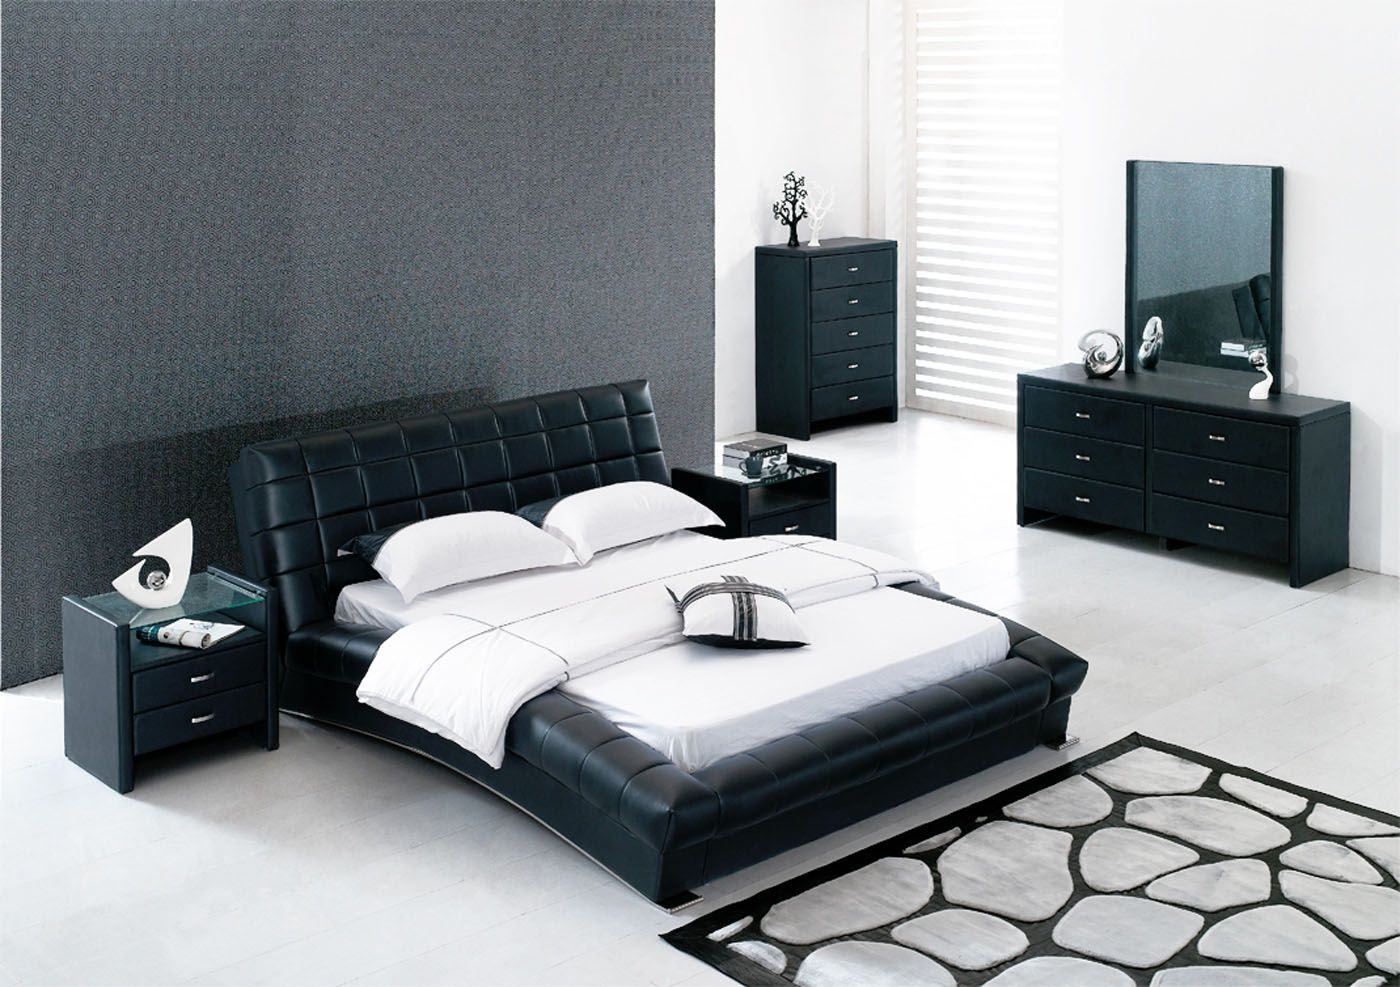 Black Contemporary Bedroom Set black leather bedroom furniture for contemporary bedroom sets with